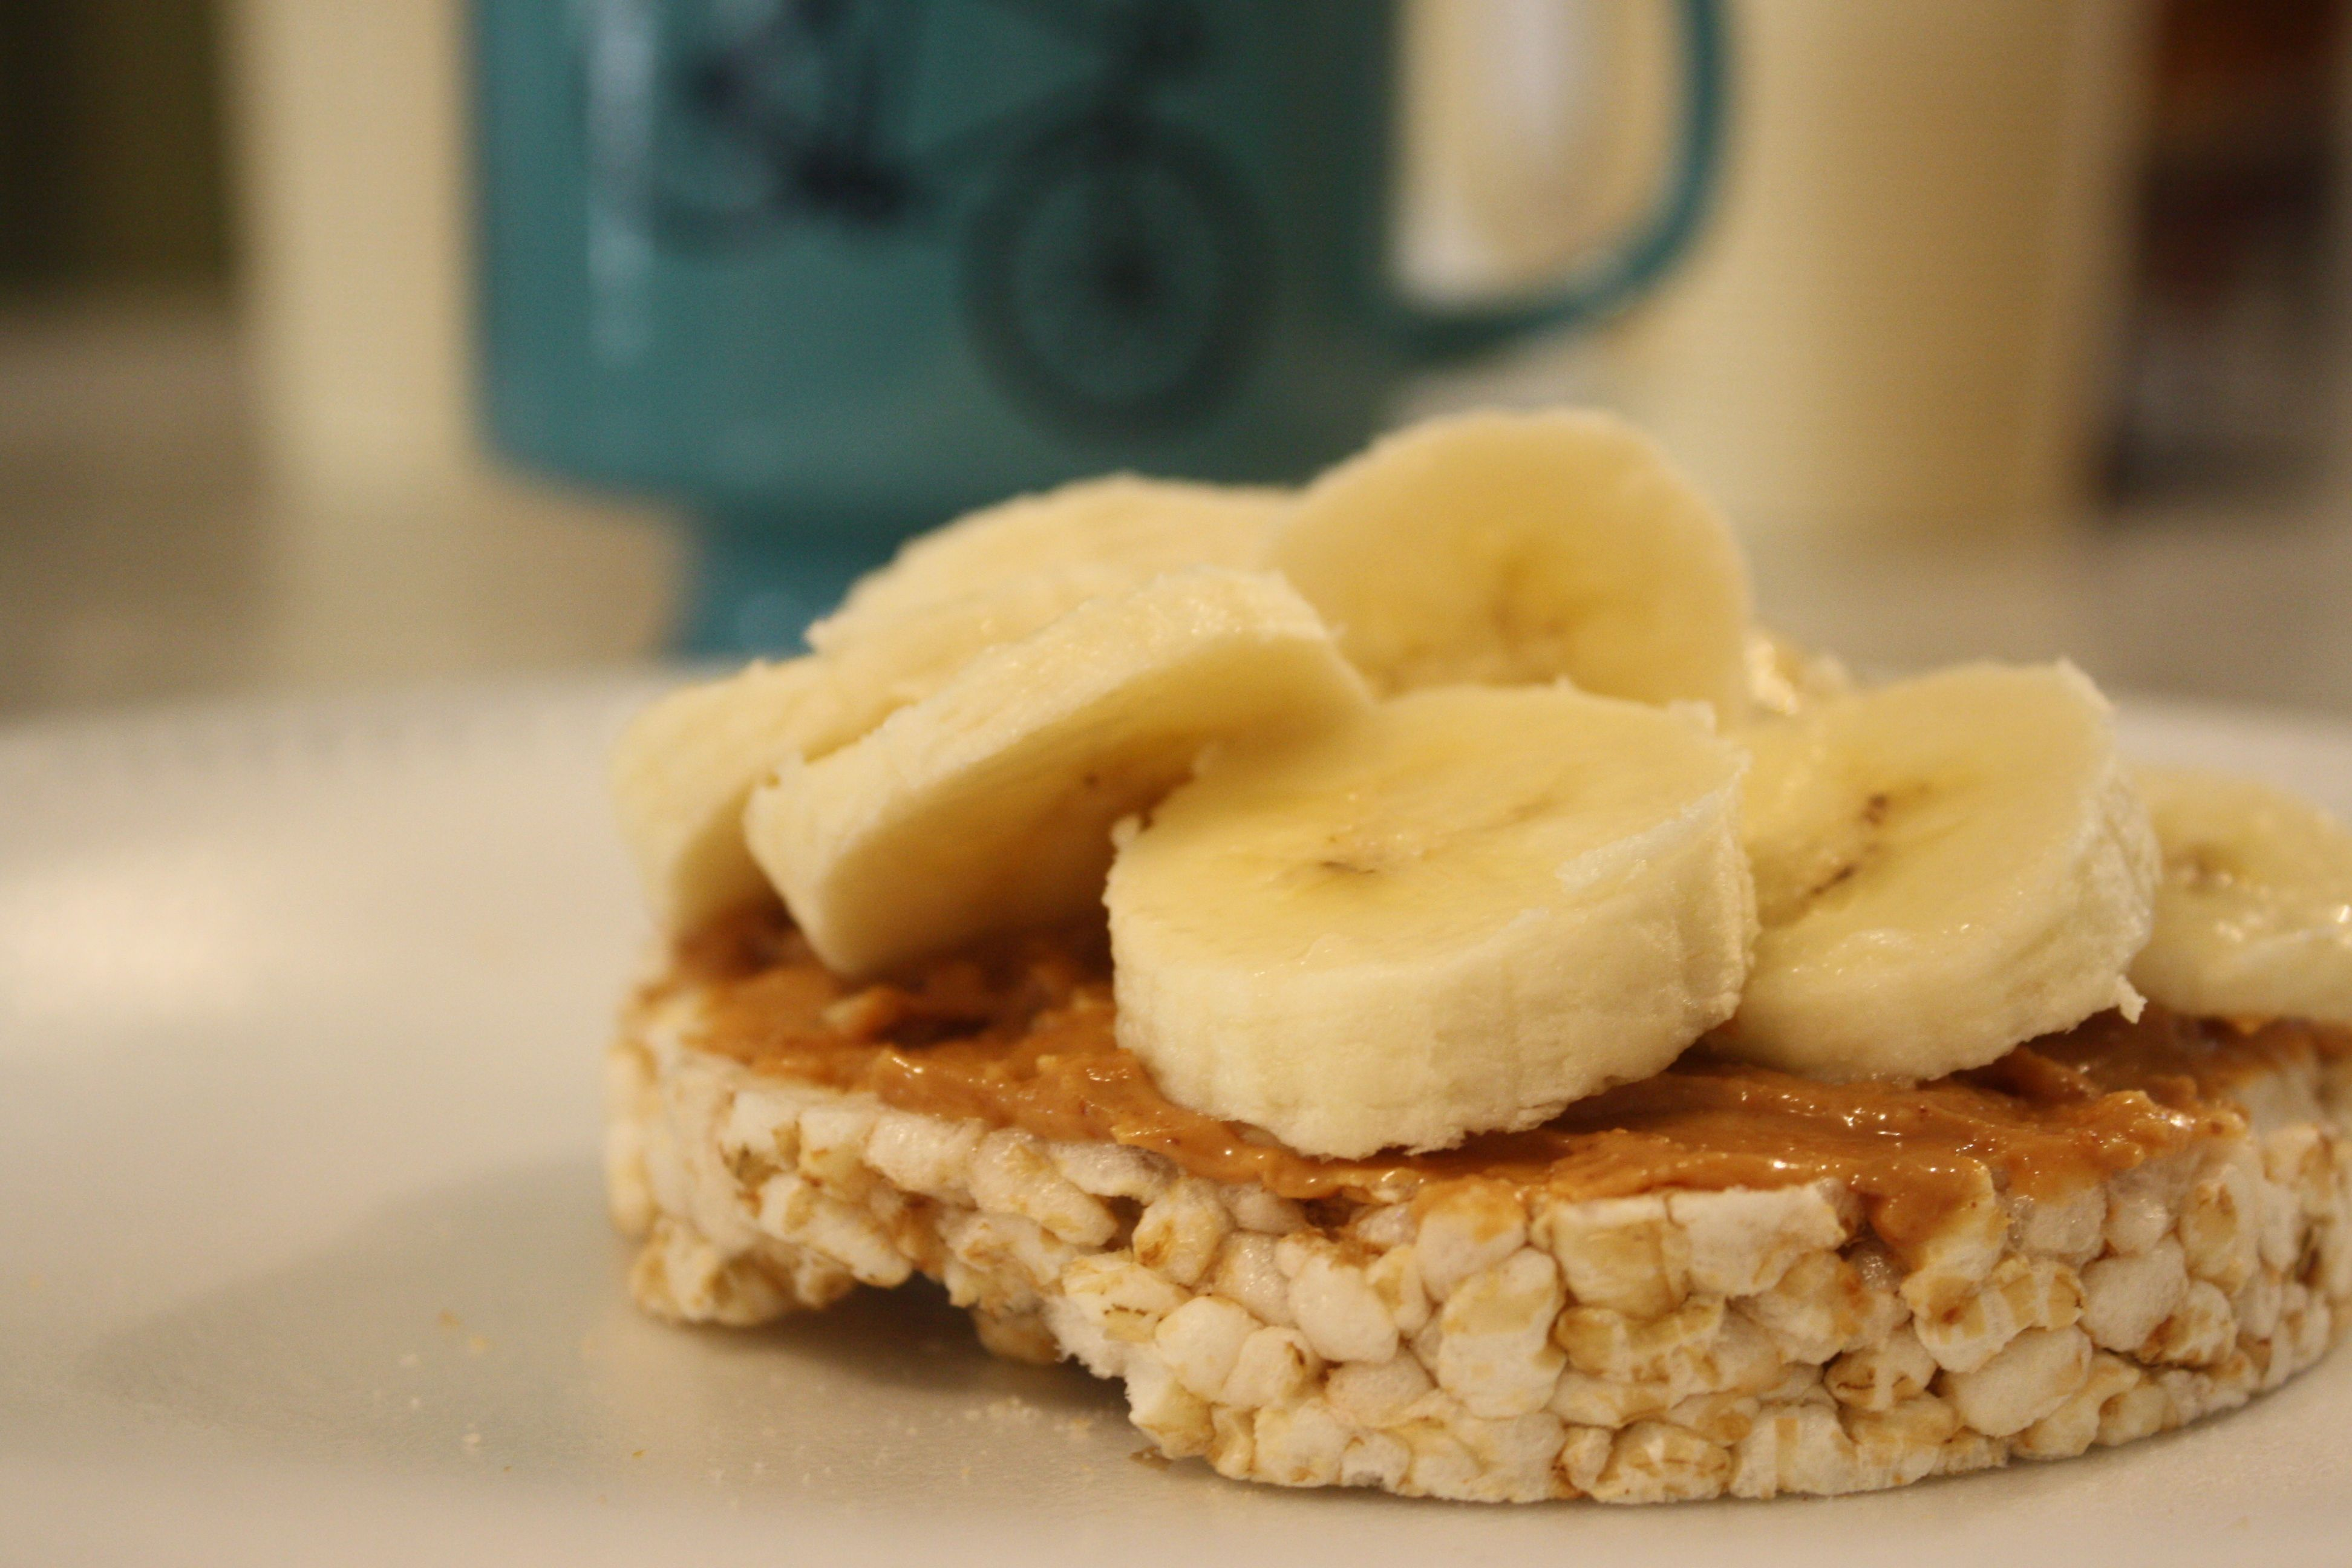 Healthy snack whole grain rice cake with peanut butter